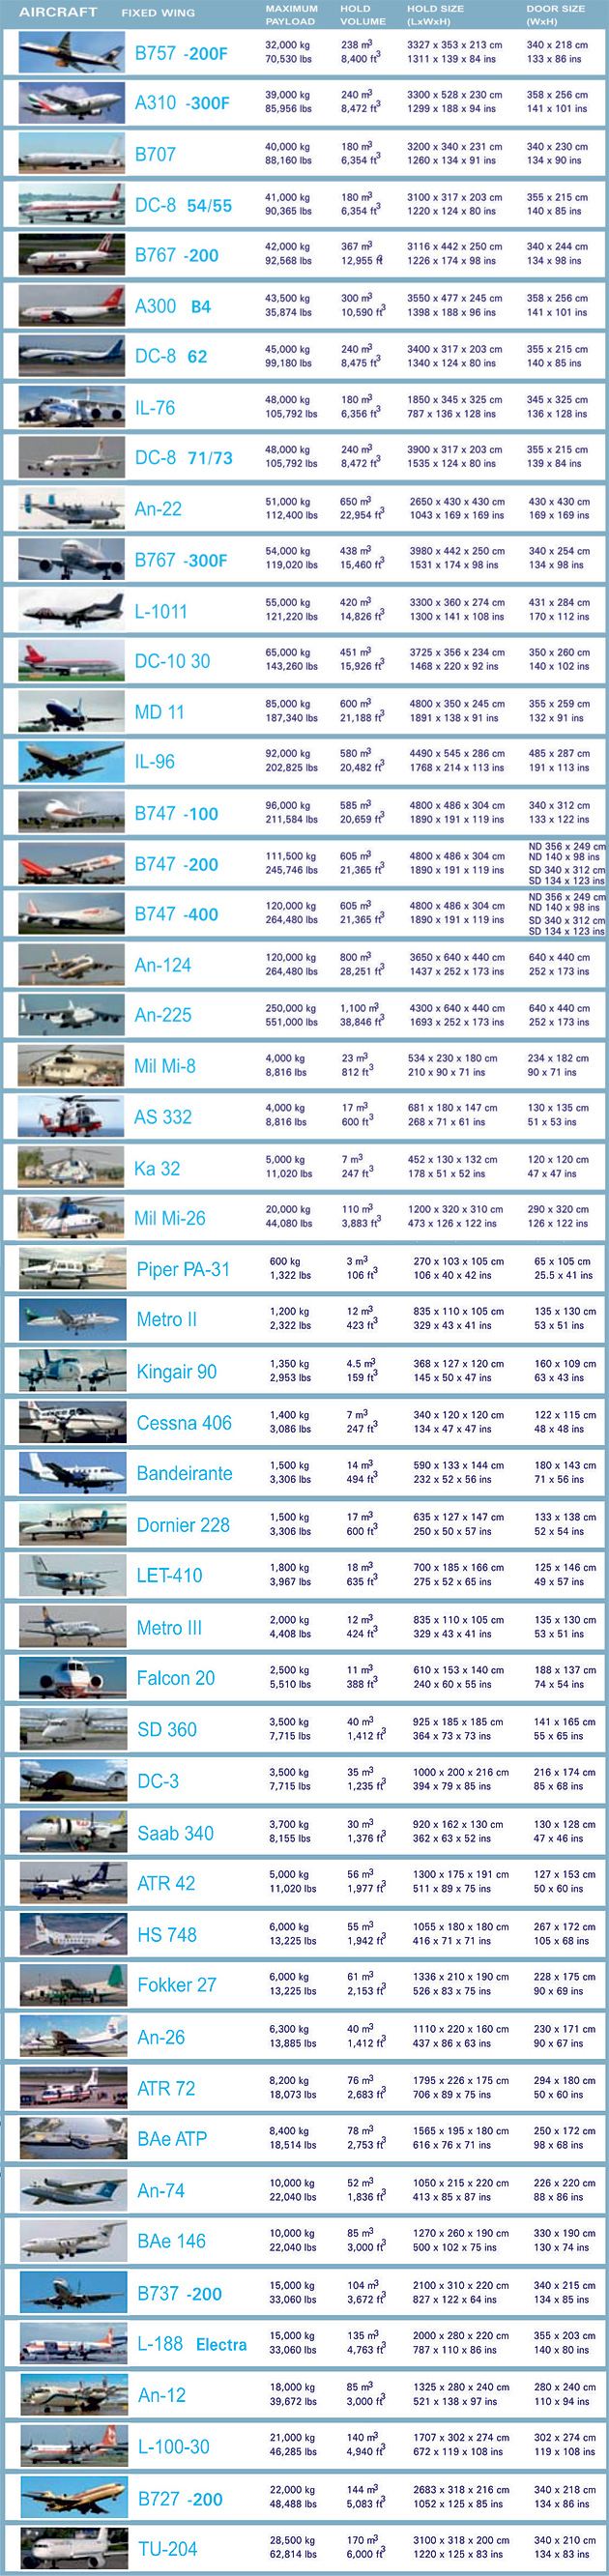 Aircraft types